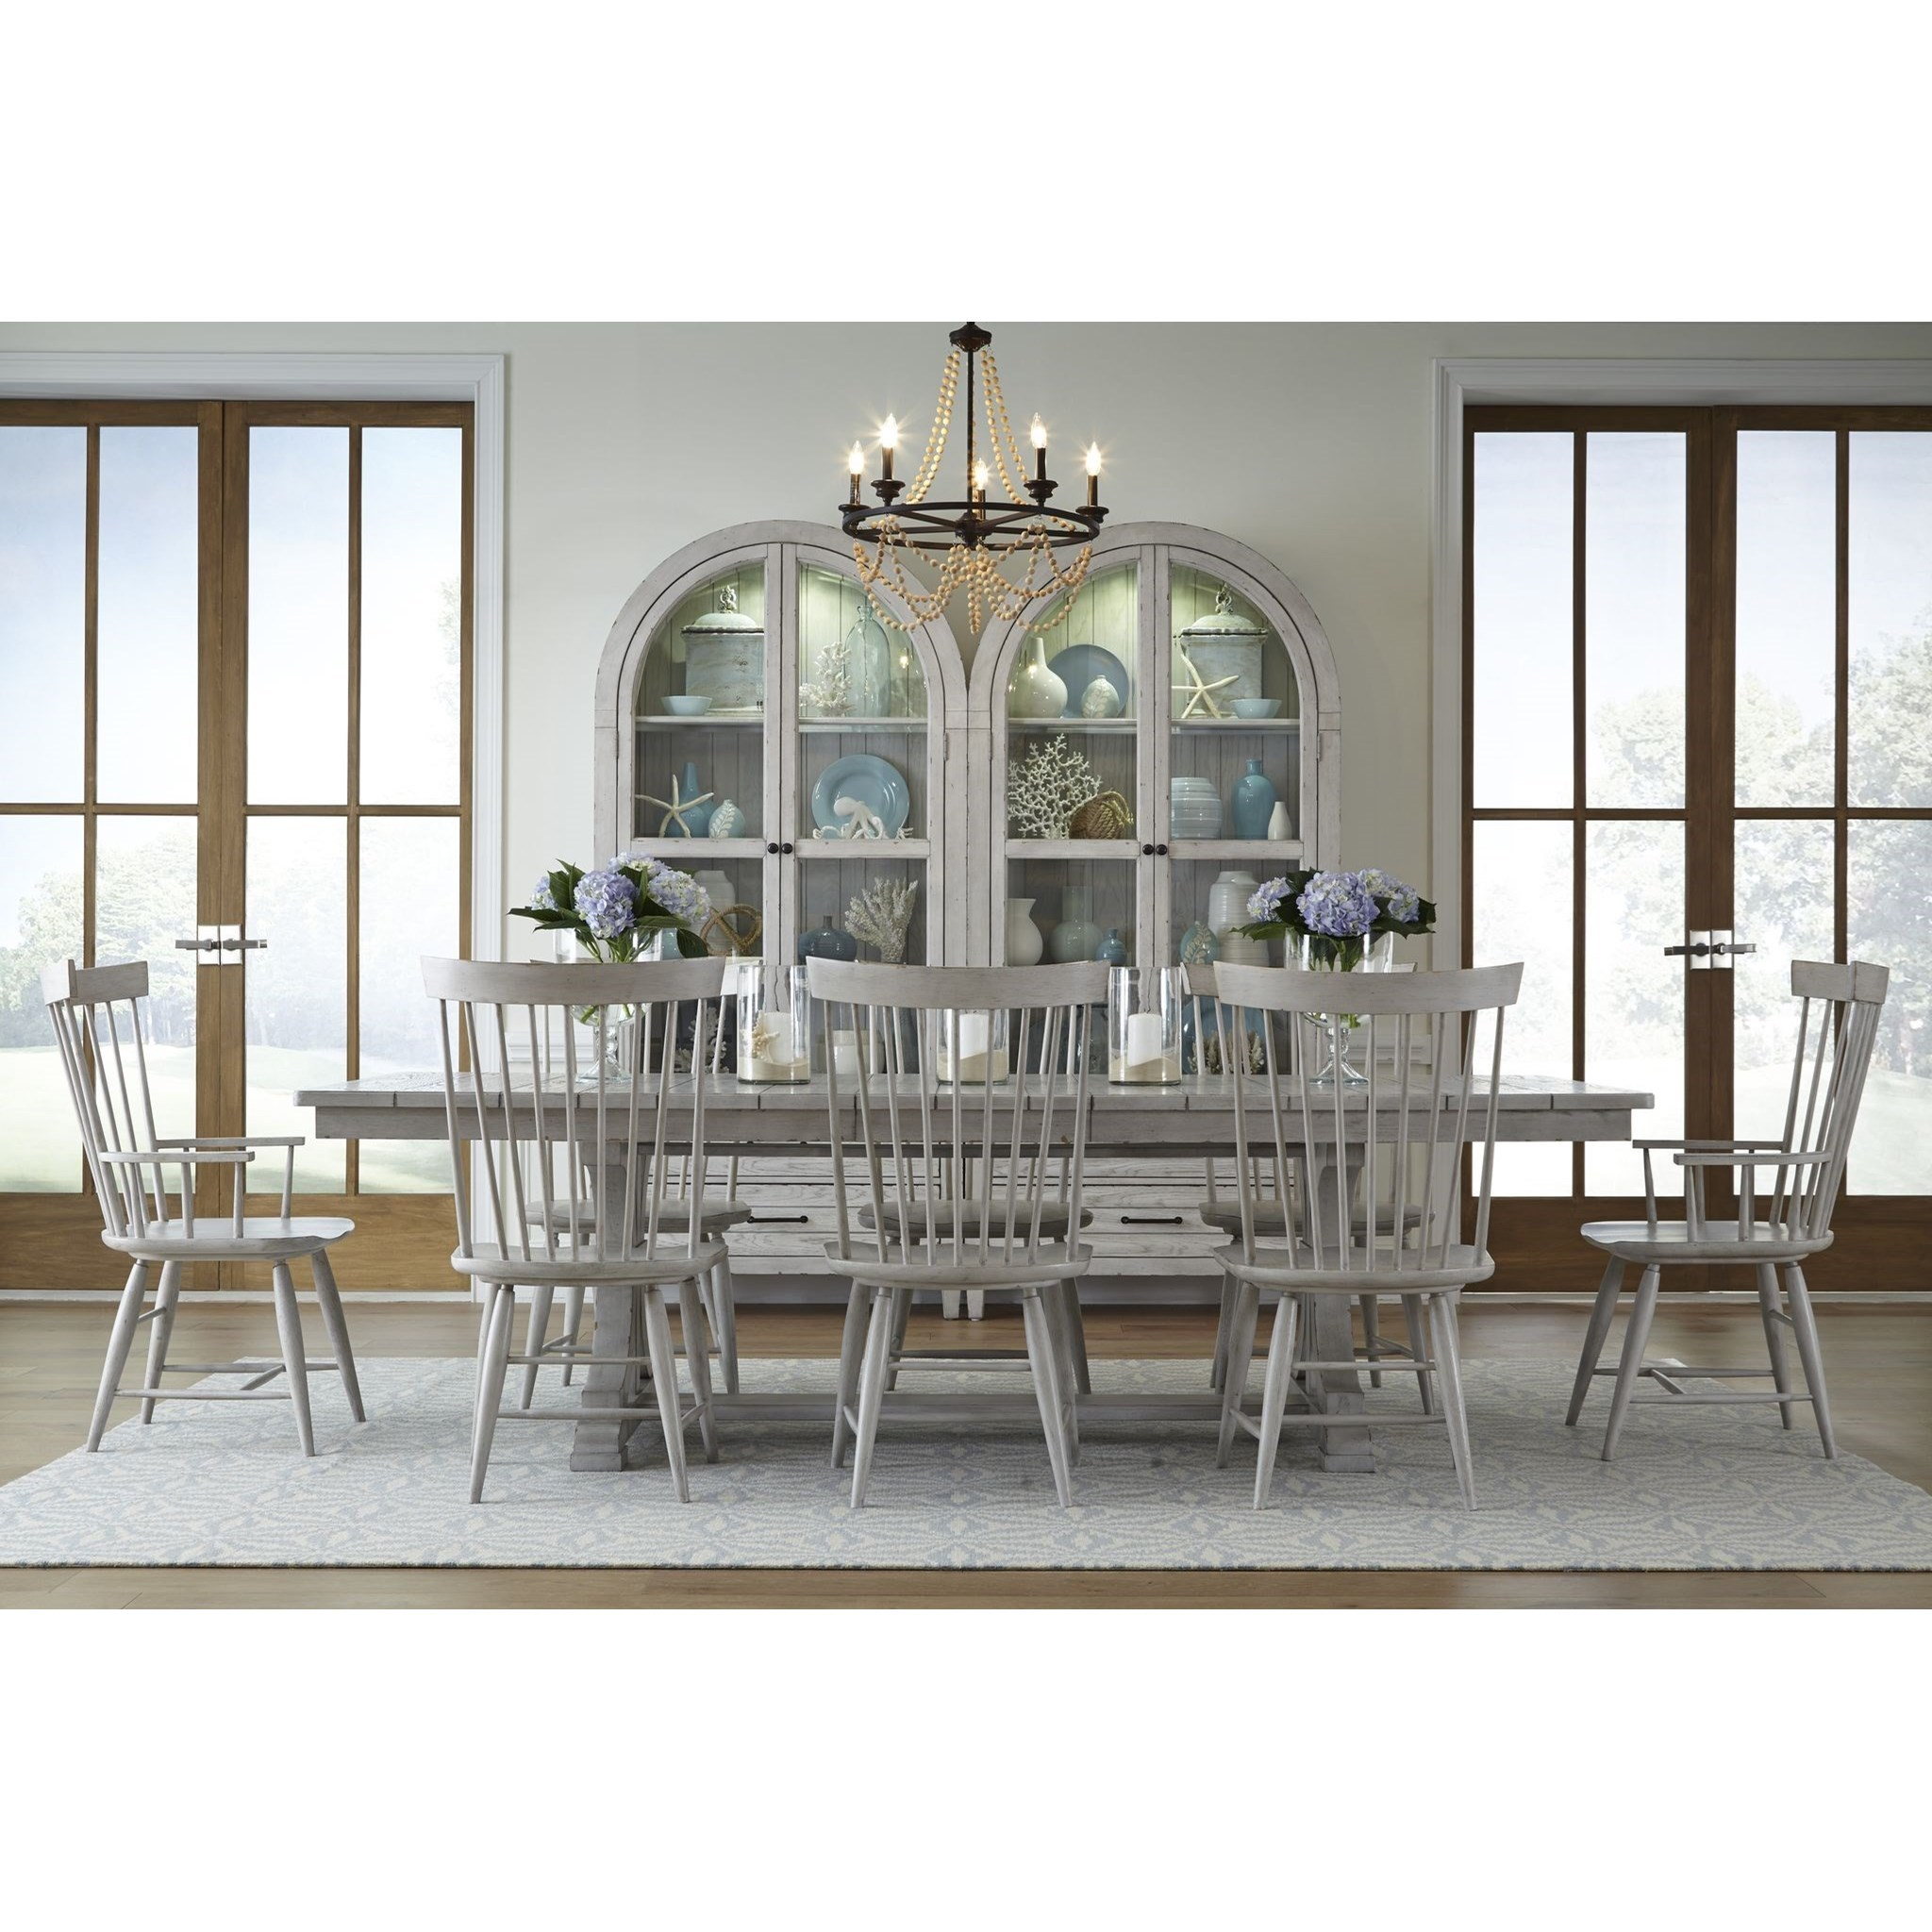 Belhaven Formal Dining Room Group by Legacy Classic at Johnny Janosik